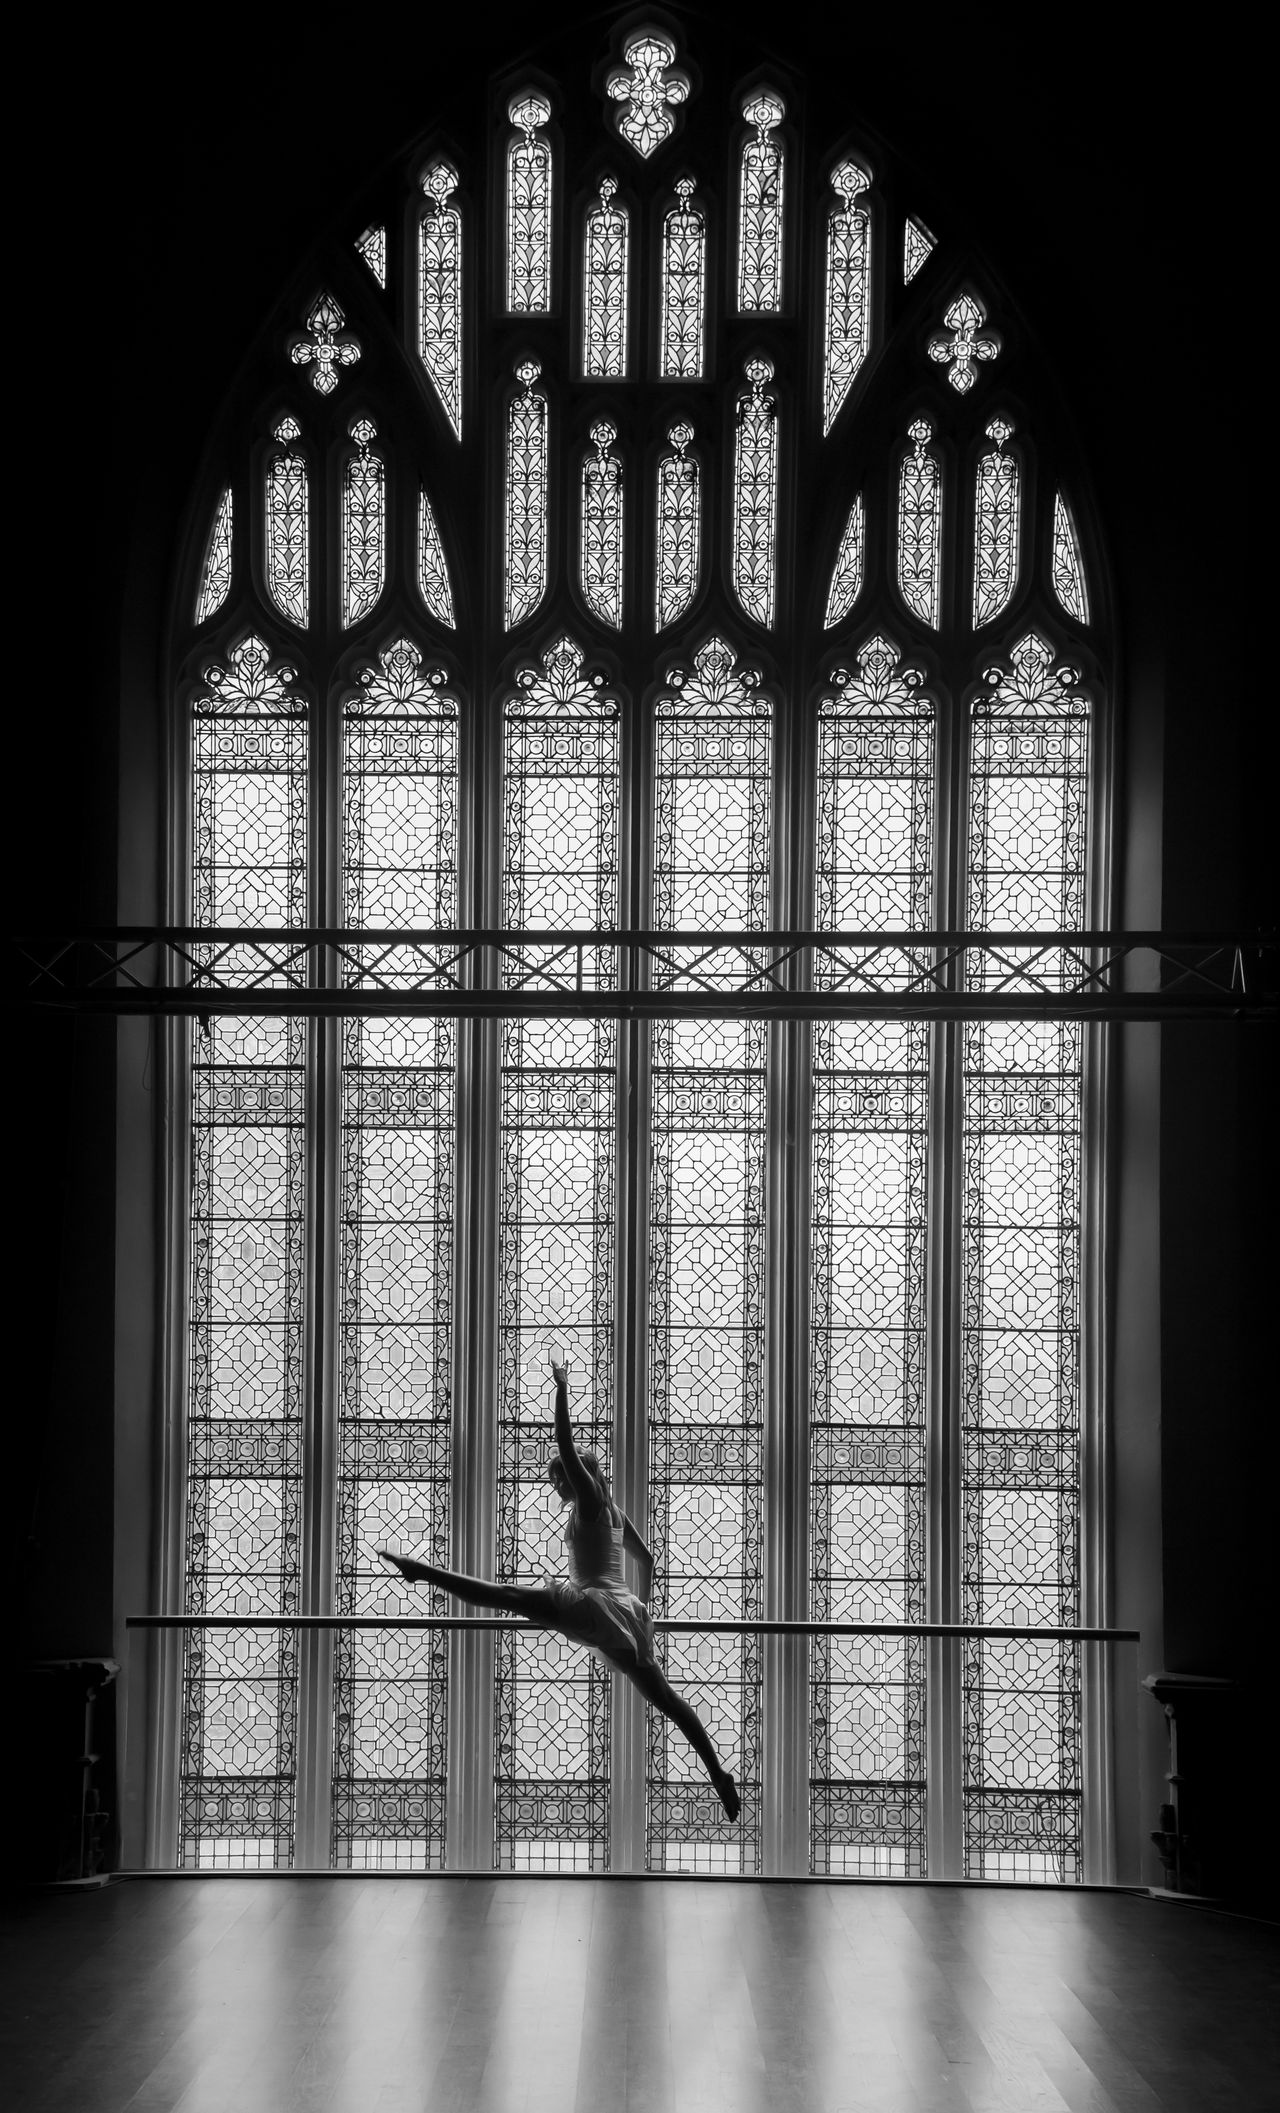 Ballerina Ballet Ballet Dancer Church Architecture Dance Dance Photography DANCE ♥ Dancer Dancers Energy Jump Jumping Movement Stained Glass Stained Glass Window Window EyeEmNewHere BYOPaper! BYOPaper! BYOPaper!